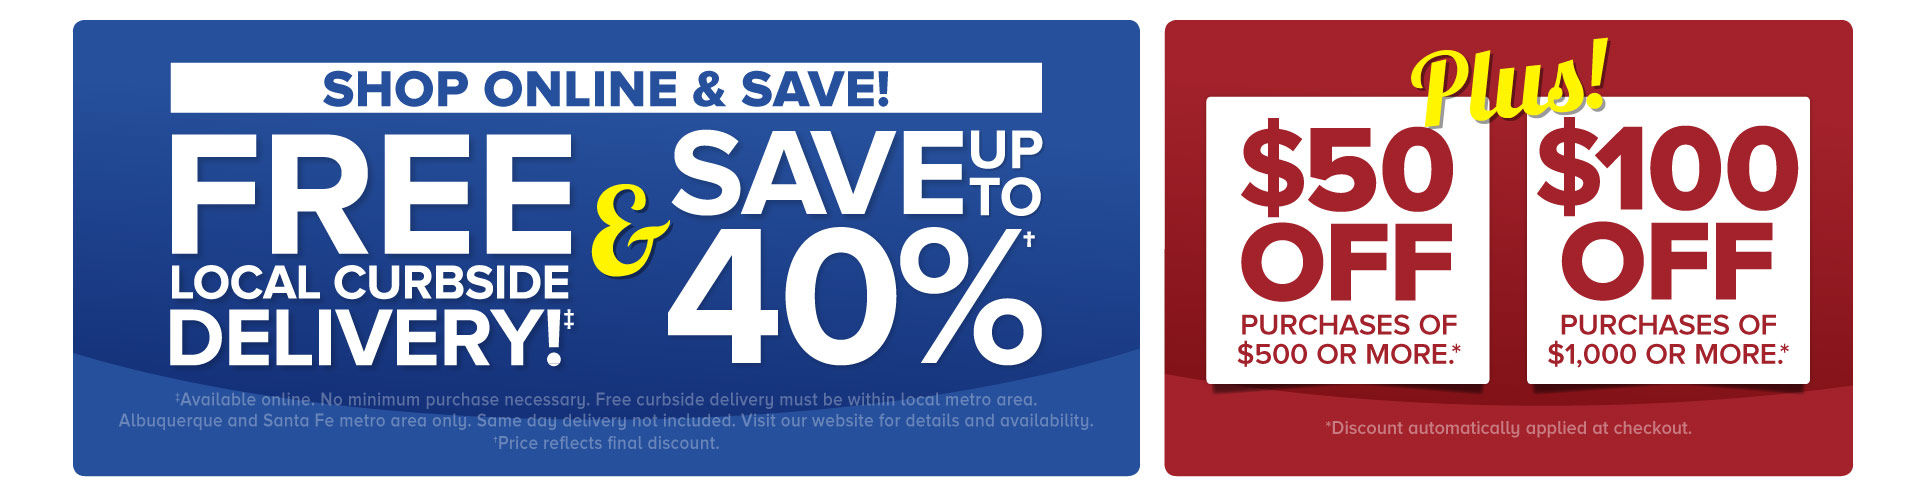 Save Up To 40% & Free Metro Curbside Delivery